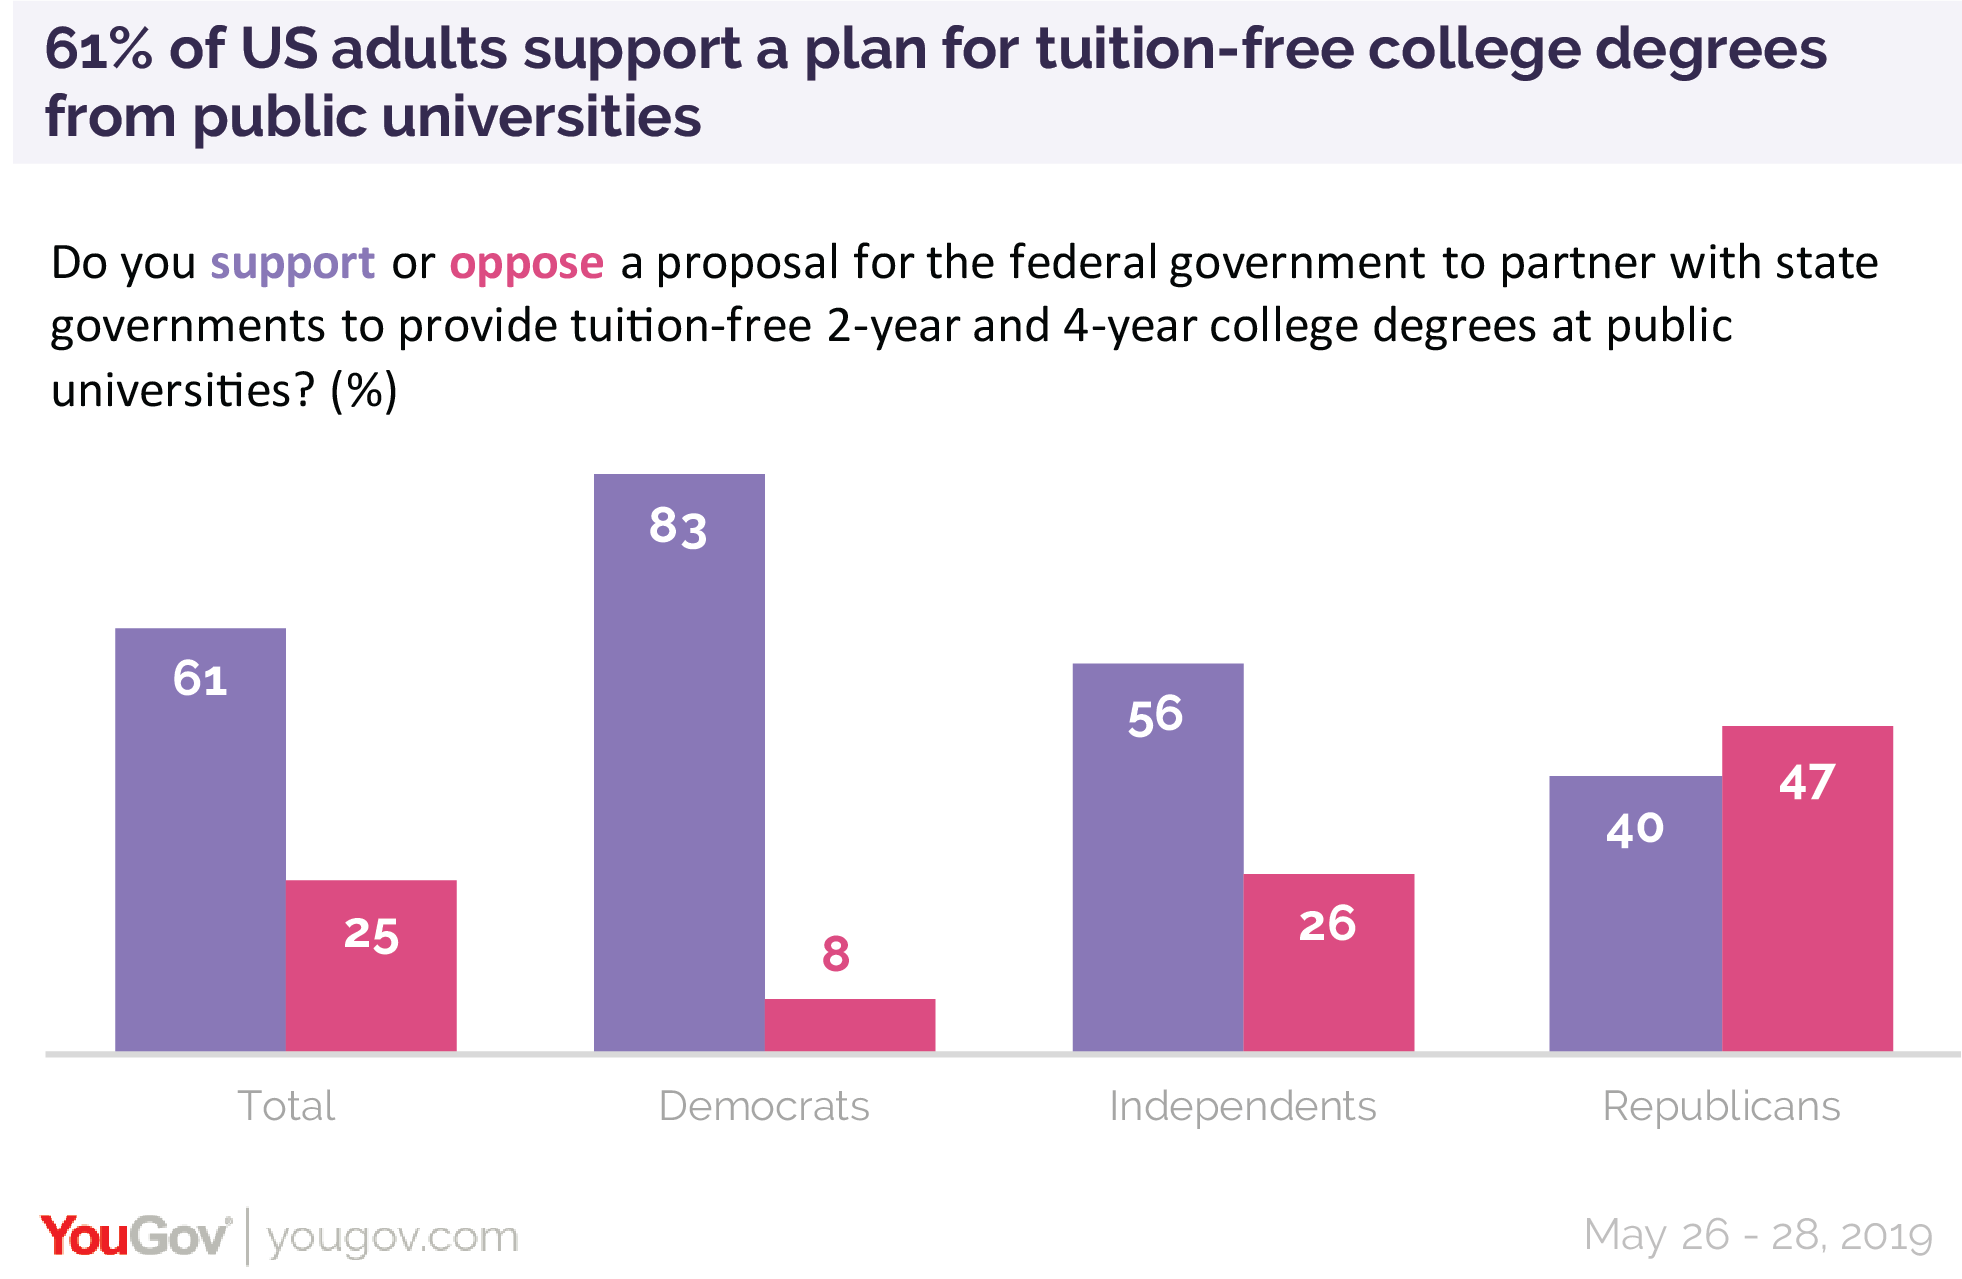 61% of US adults support a plan for tuition-free college degrees from public universities